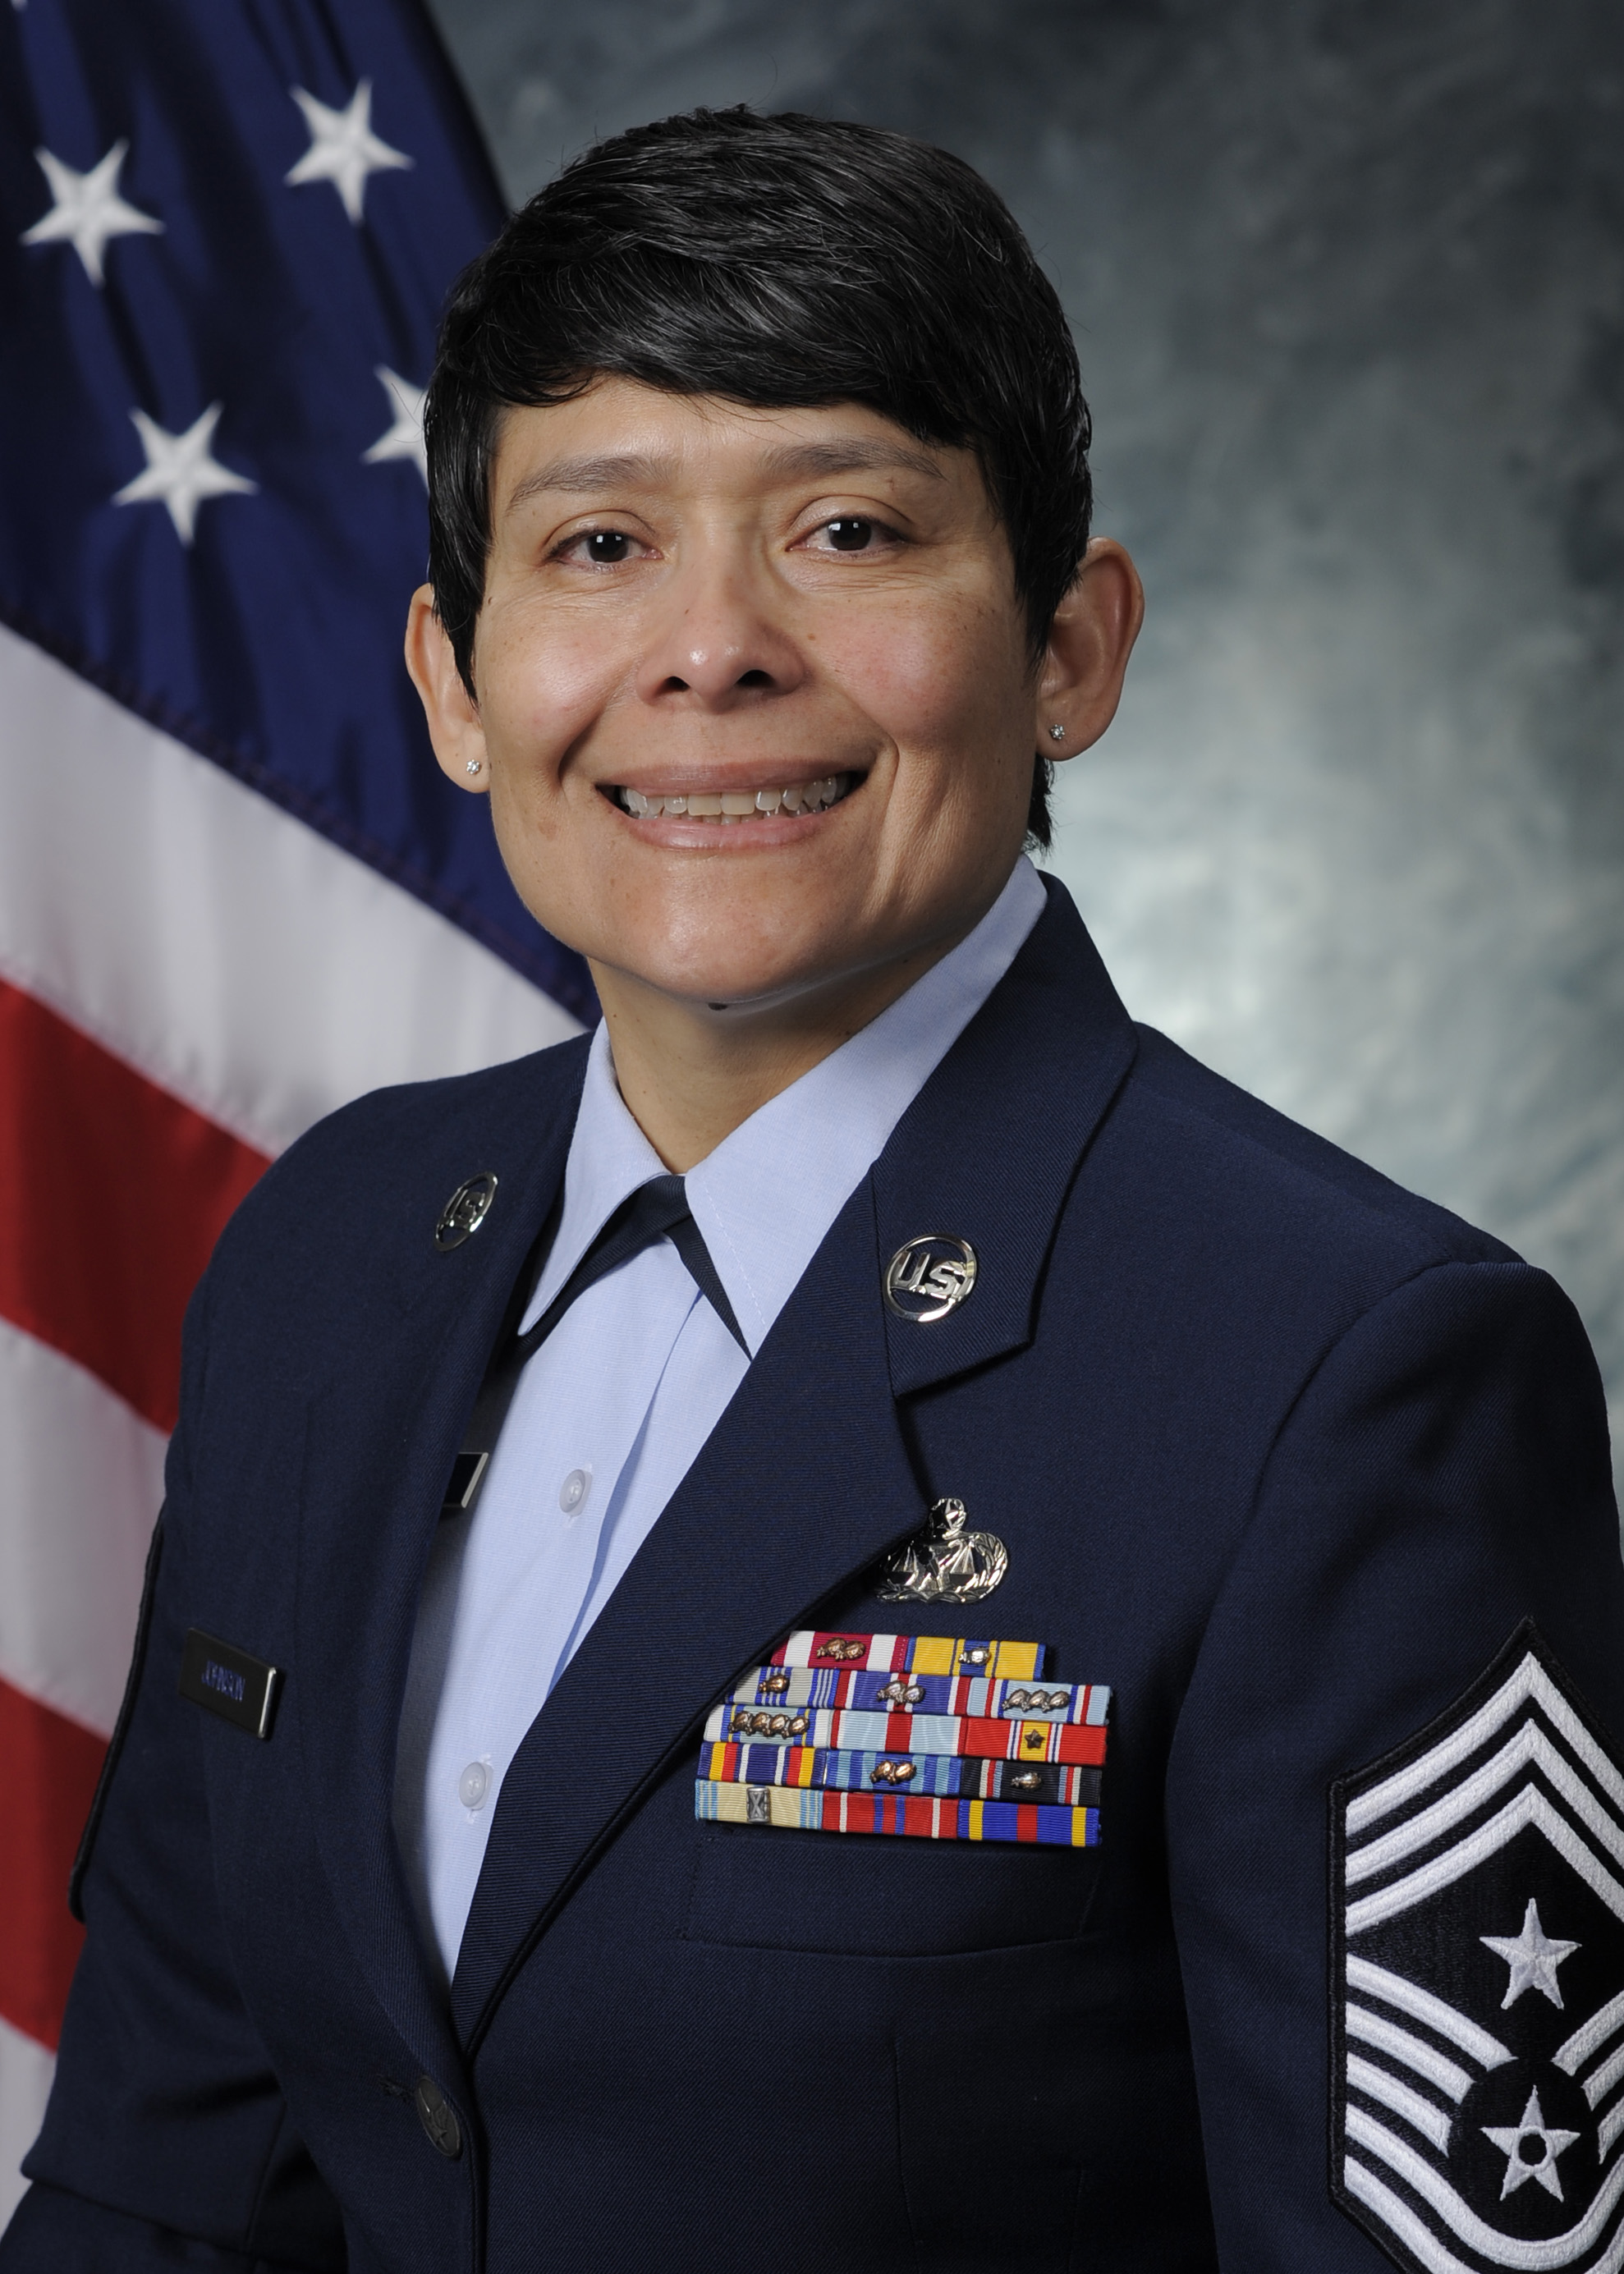 22nd Air Force Command Chief Master Sgt